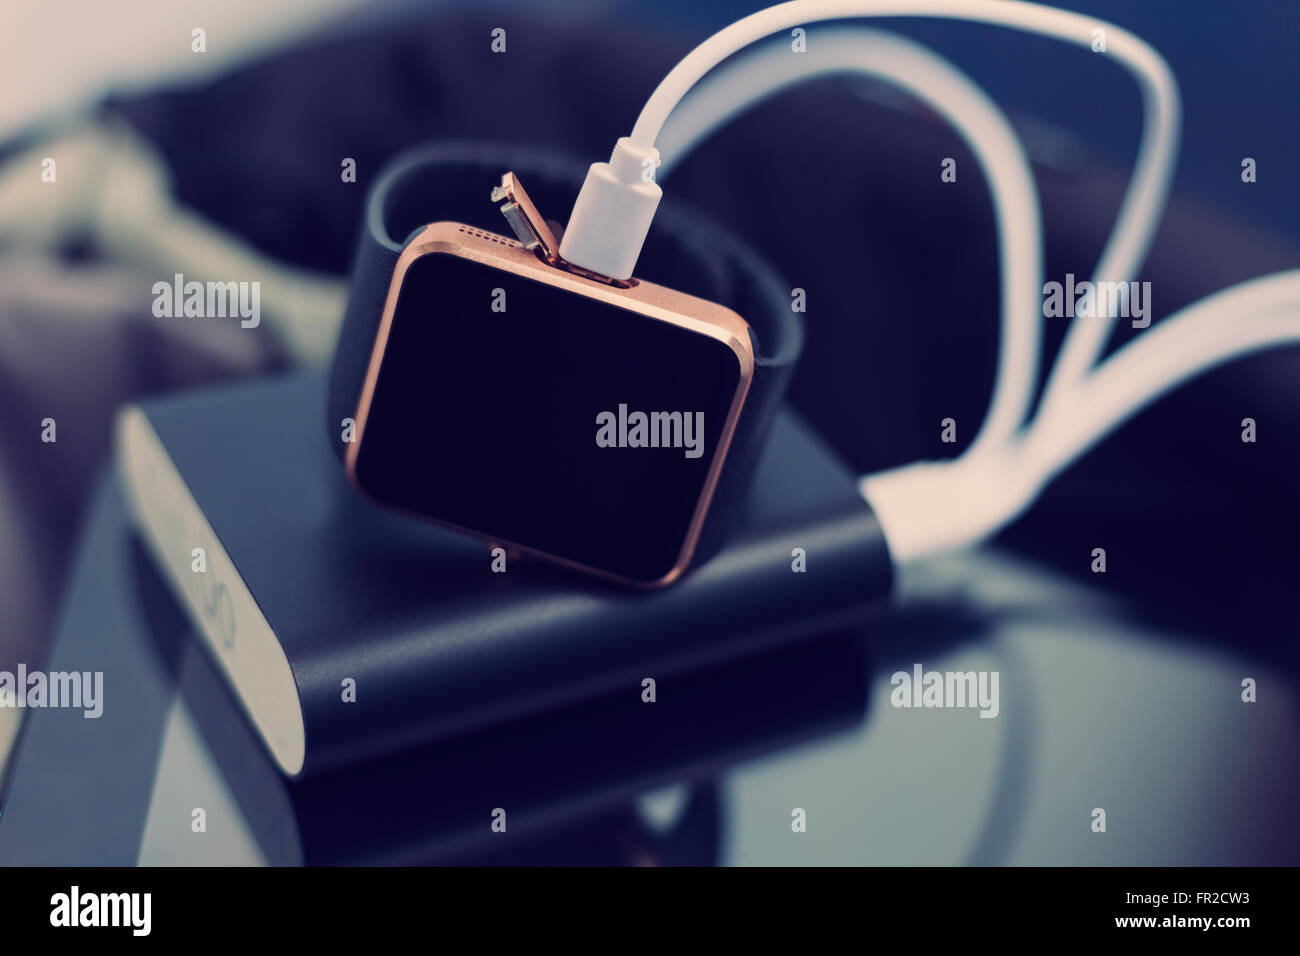 Smart wrist watch charging from a travel powerbank charger. Travel and stay connected to the media networks anywhere - Stock Image